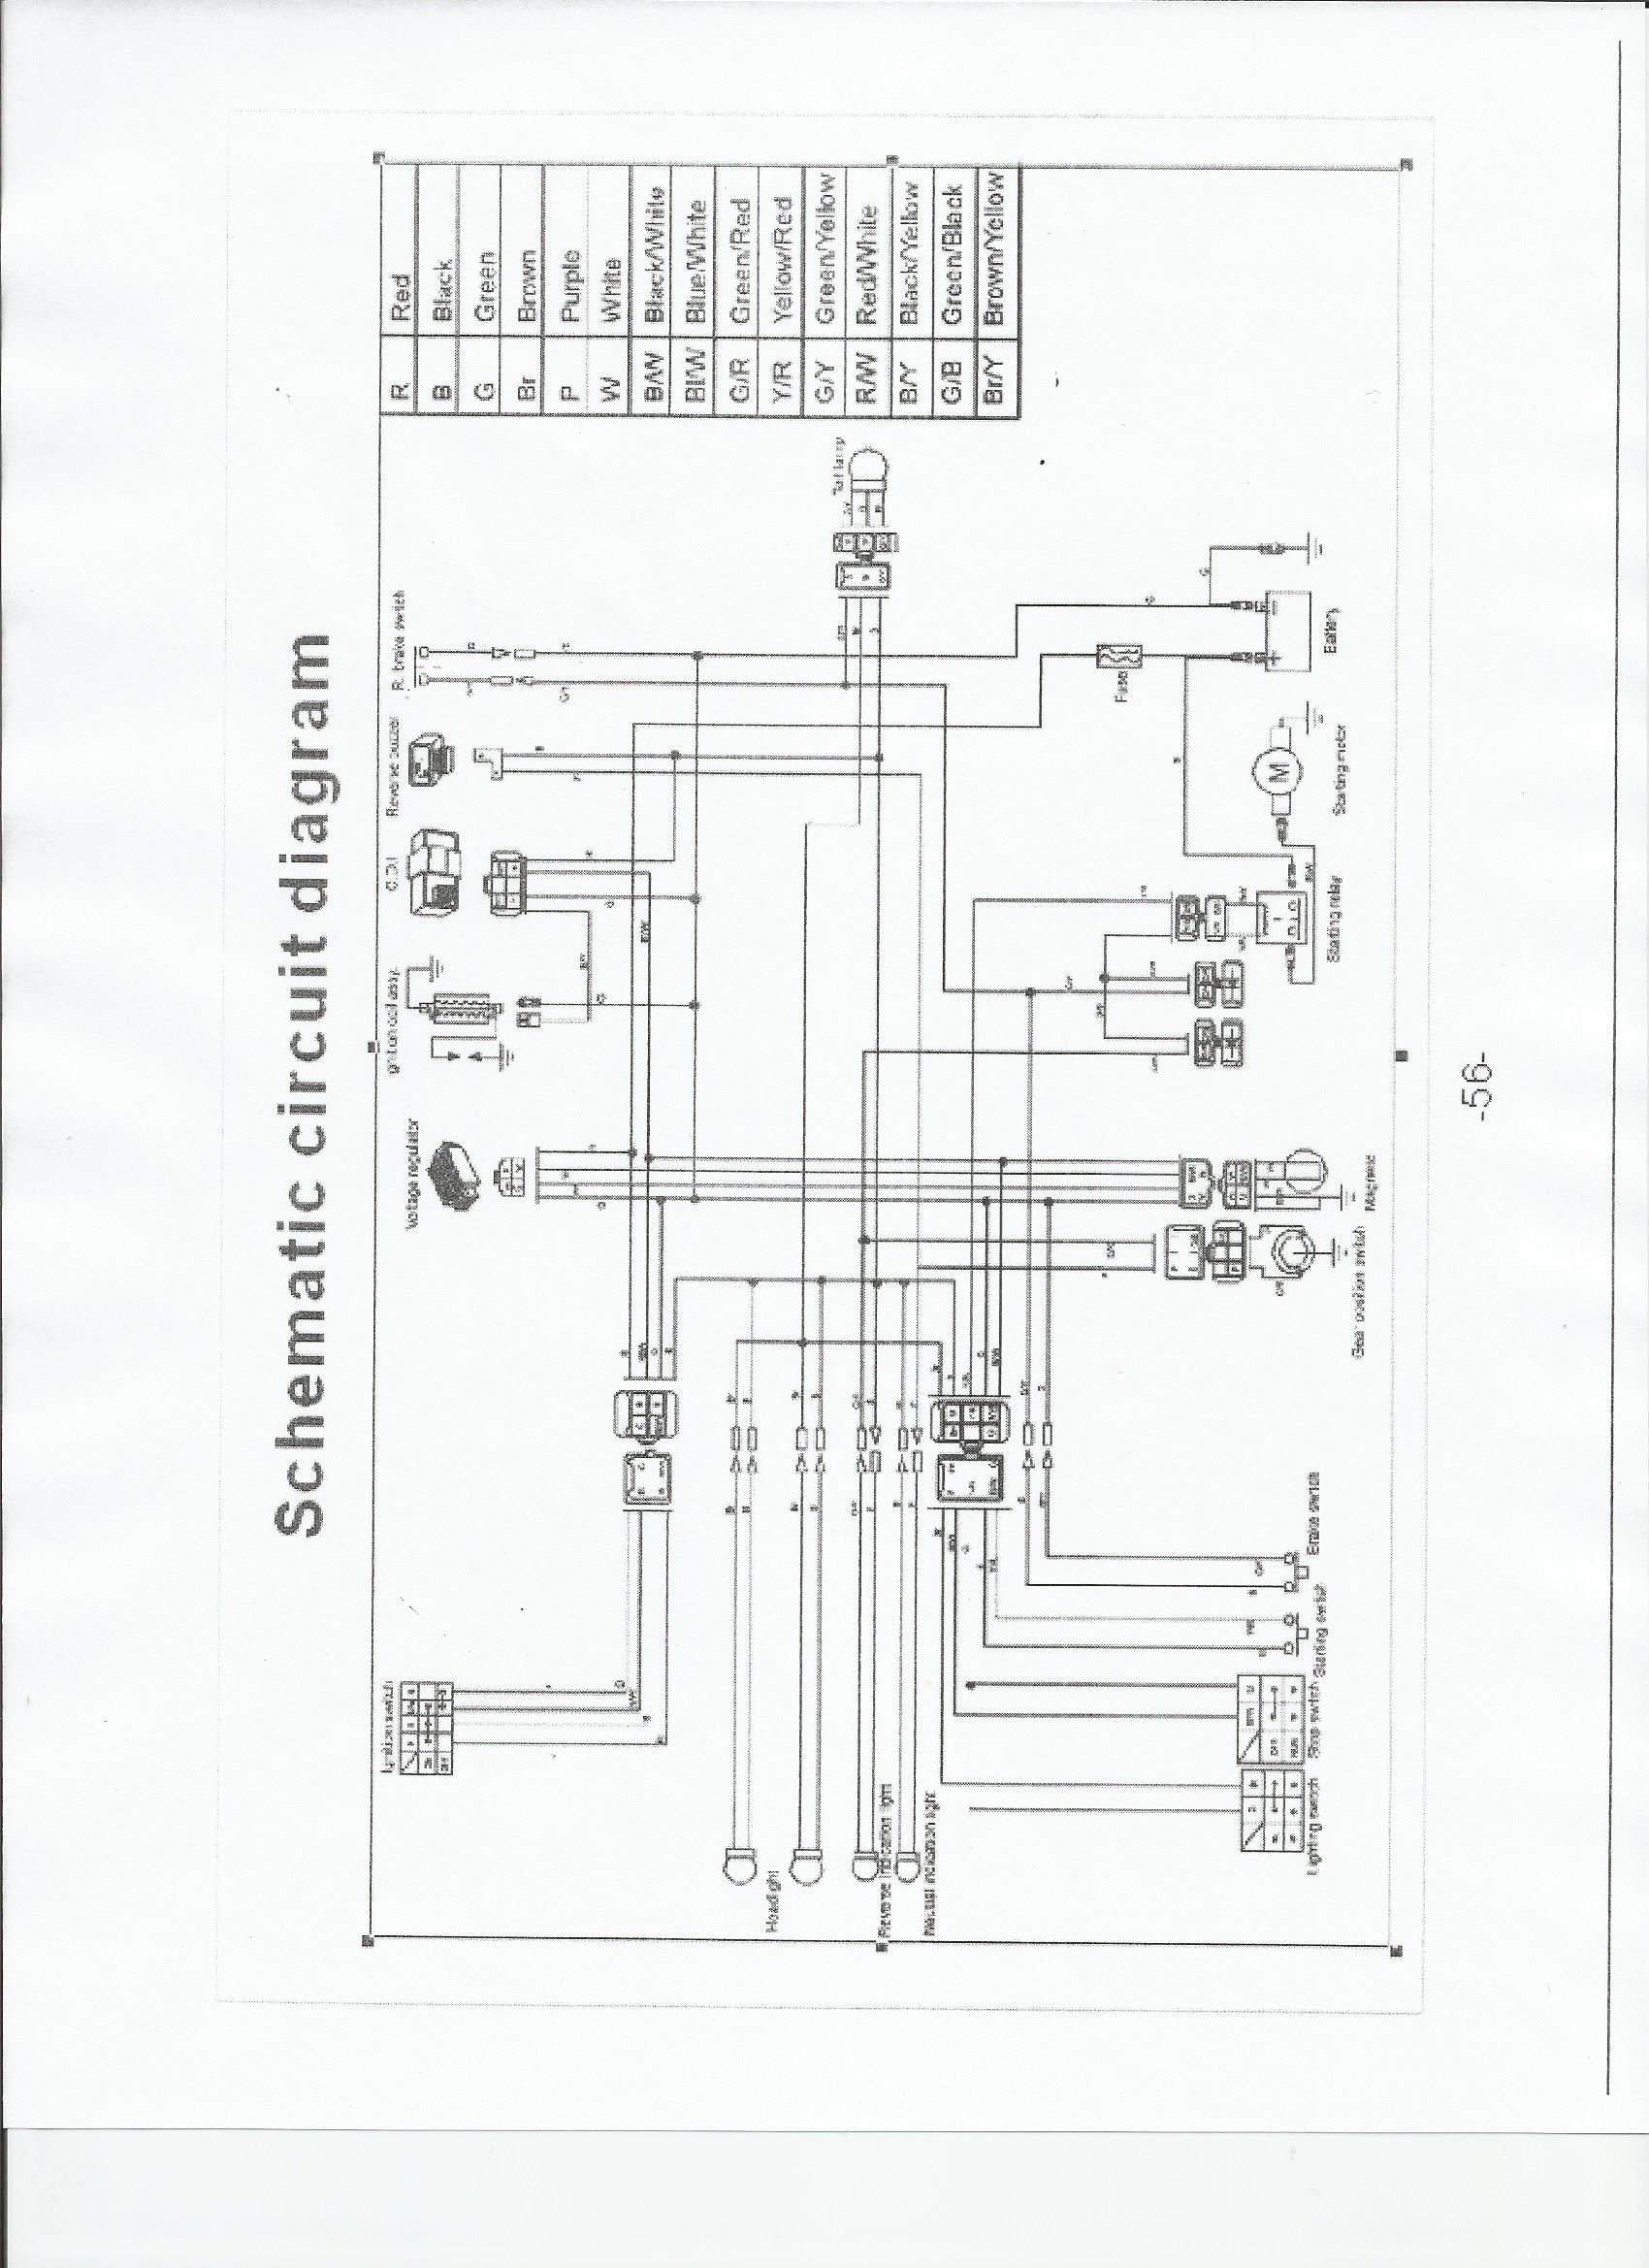 tao tao wiring schematic chinese 4 wheeler wiring diagram chinese atv cdi diagram \u2022 wiring  at gsmx.co